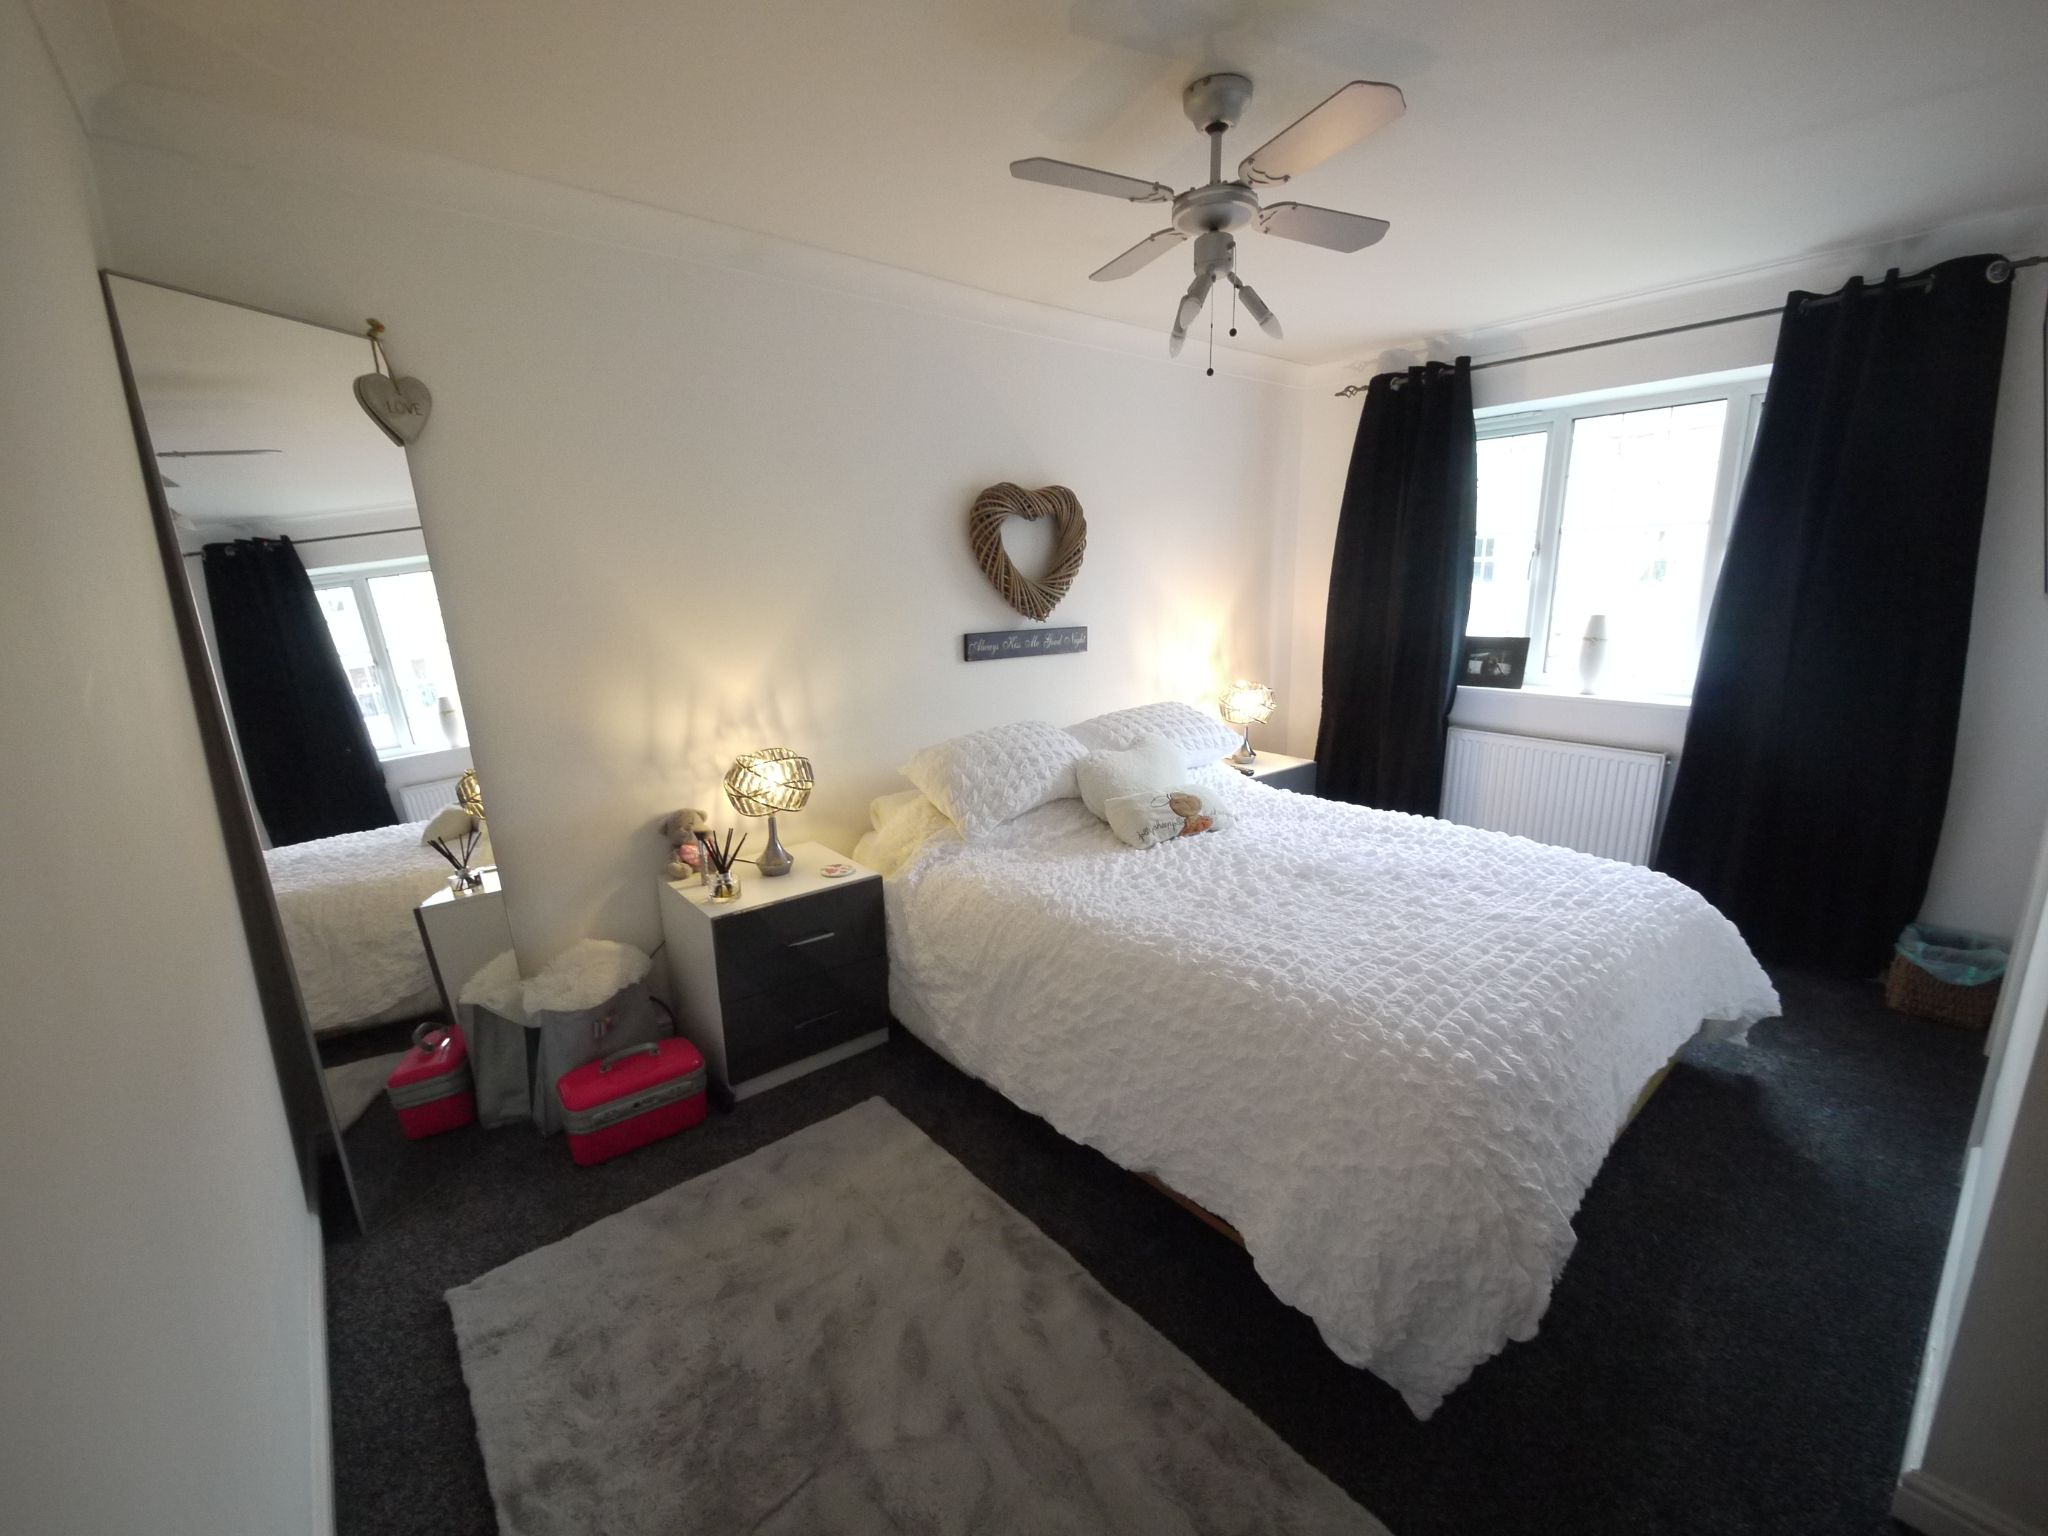 4 bedroom detached house SSTC in Brighouse - Master Bedroom.